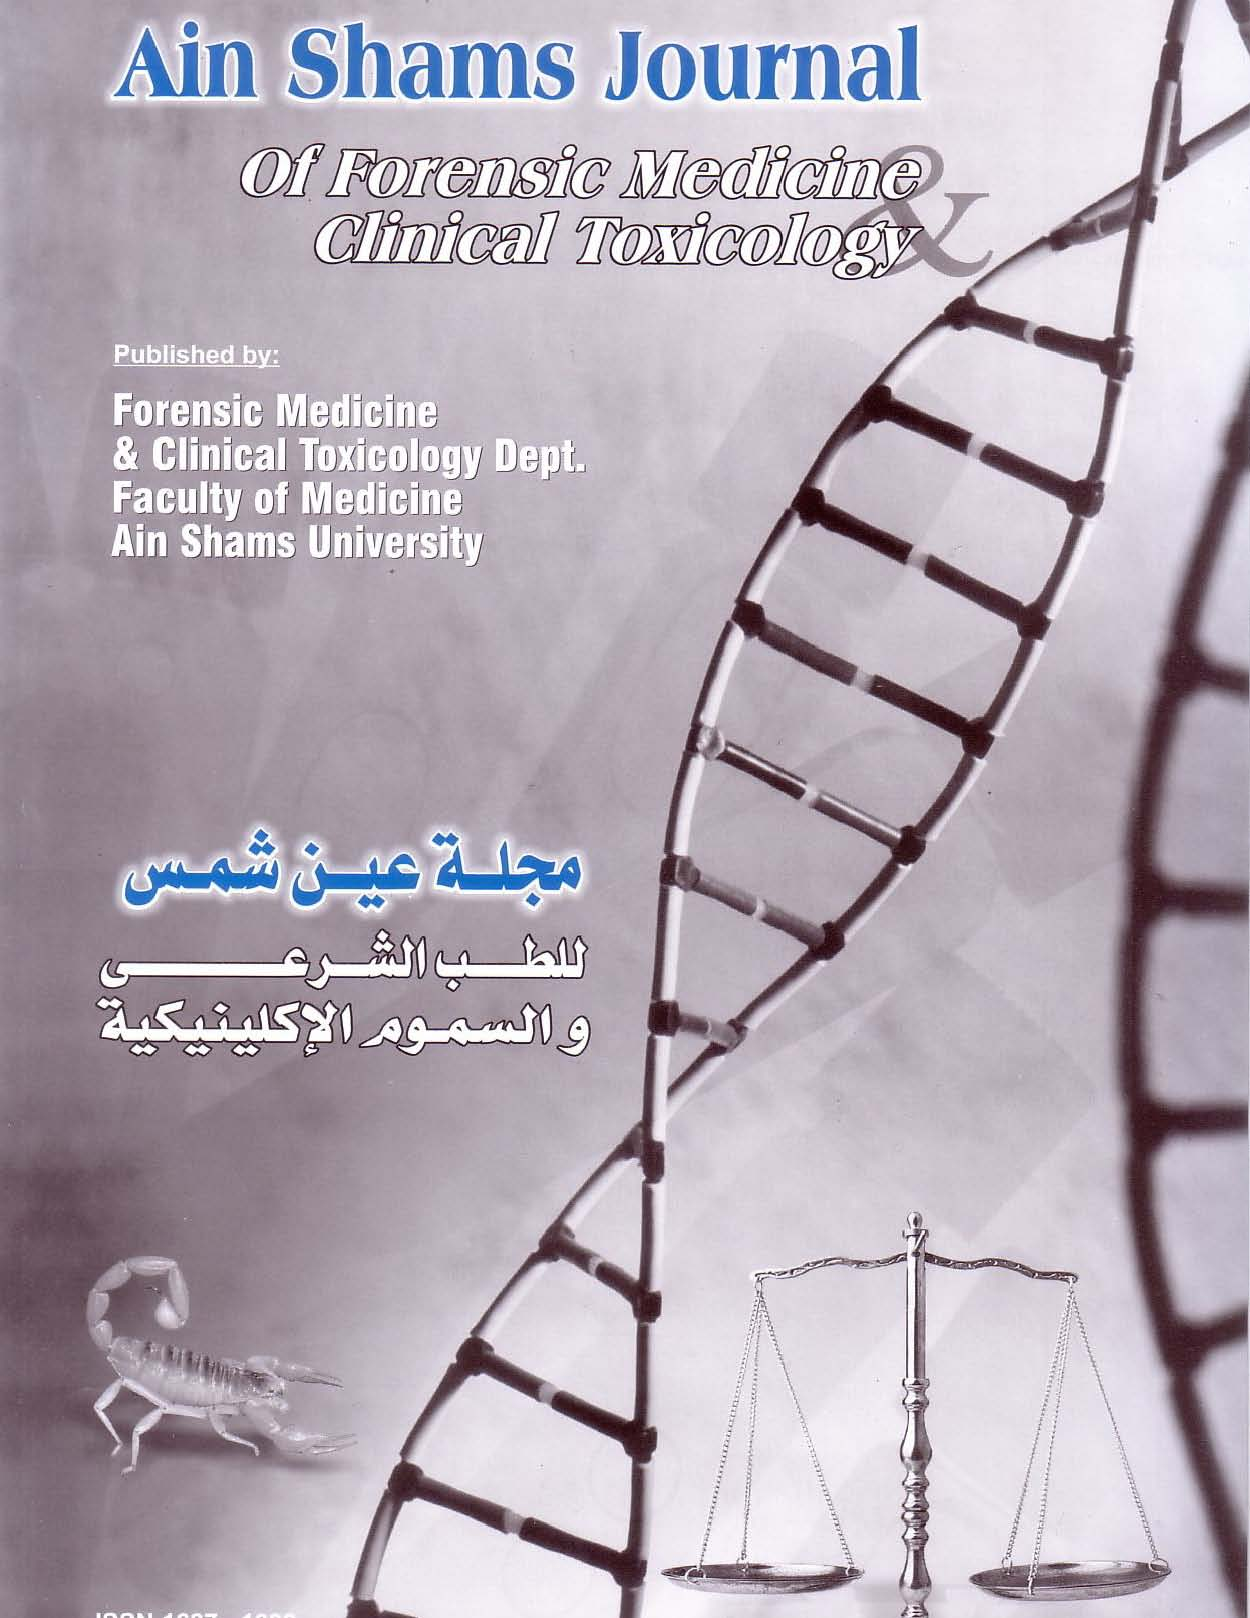 Ain Shams Journal of Forensic Medicine and Clinical Toxicology